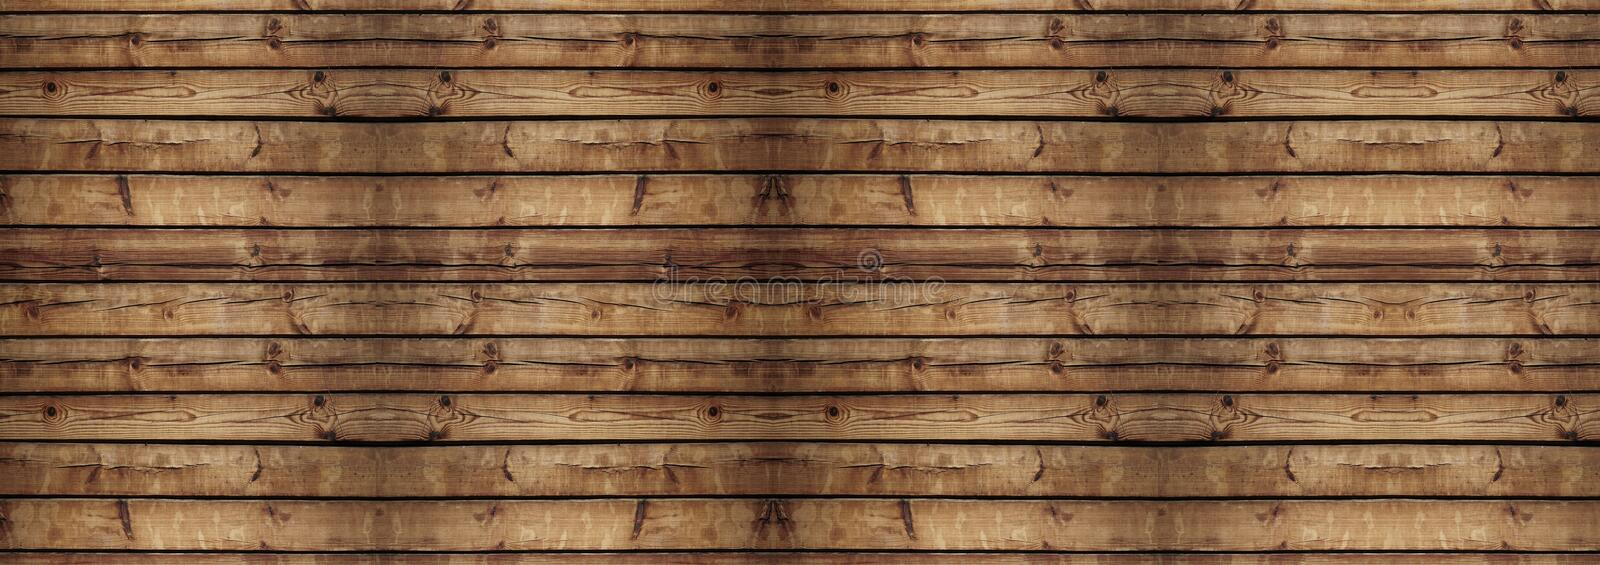 Old wood backround retro wooden backdrop rustic wood texture. stock images